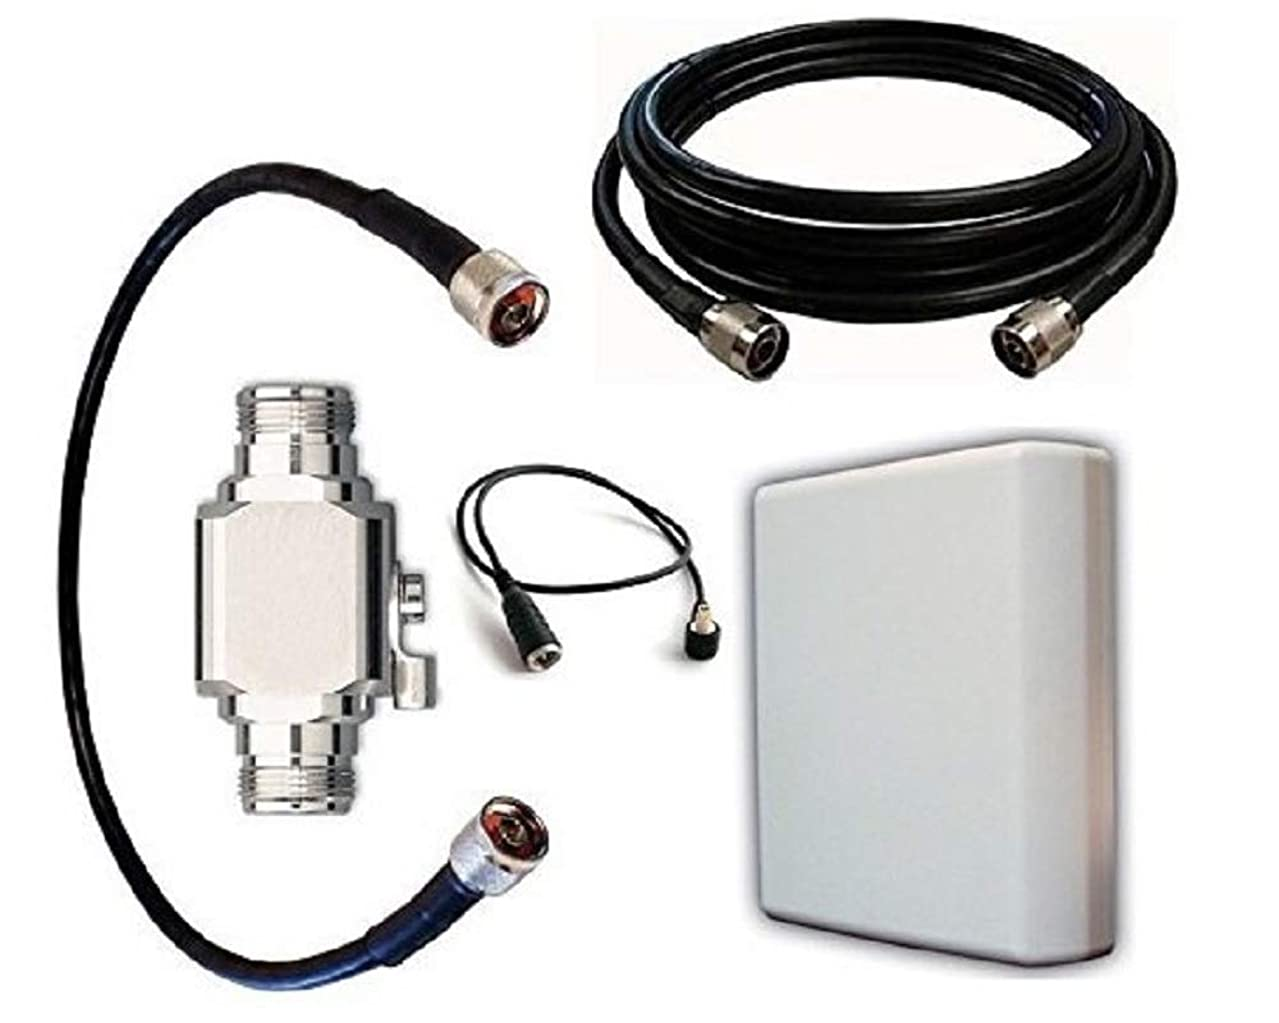 High Power Antenna Kit for Verizon LG VL600 USB Modem with Panel Antenna and 50 ft Cable